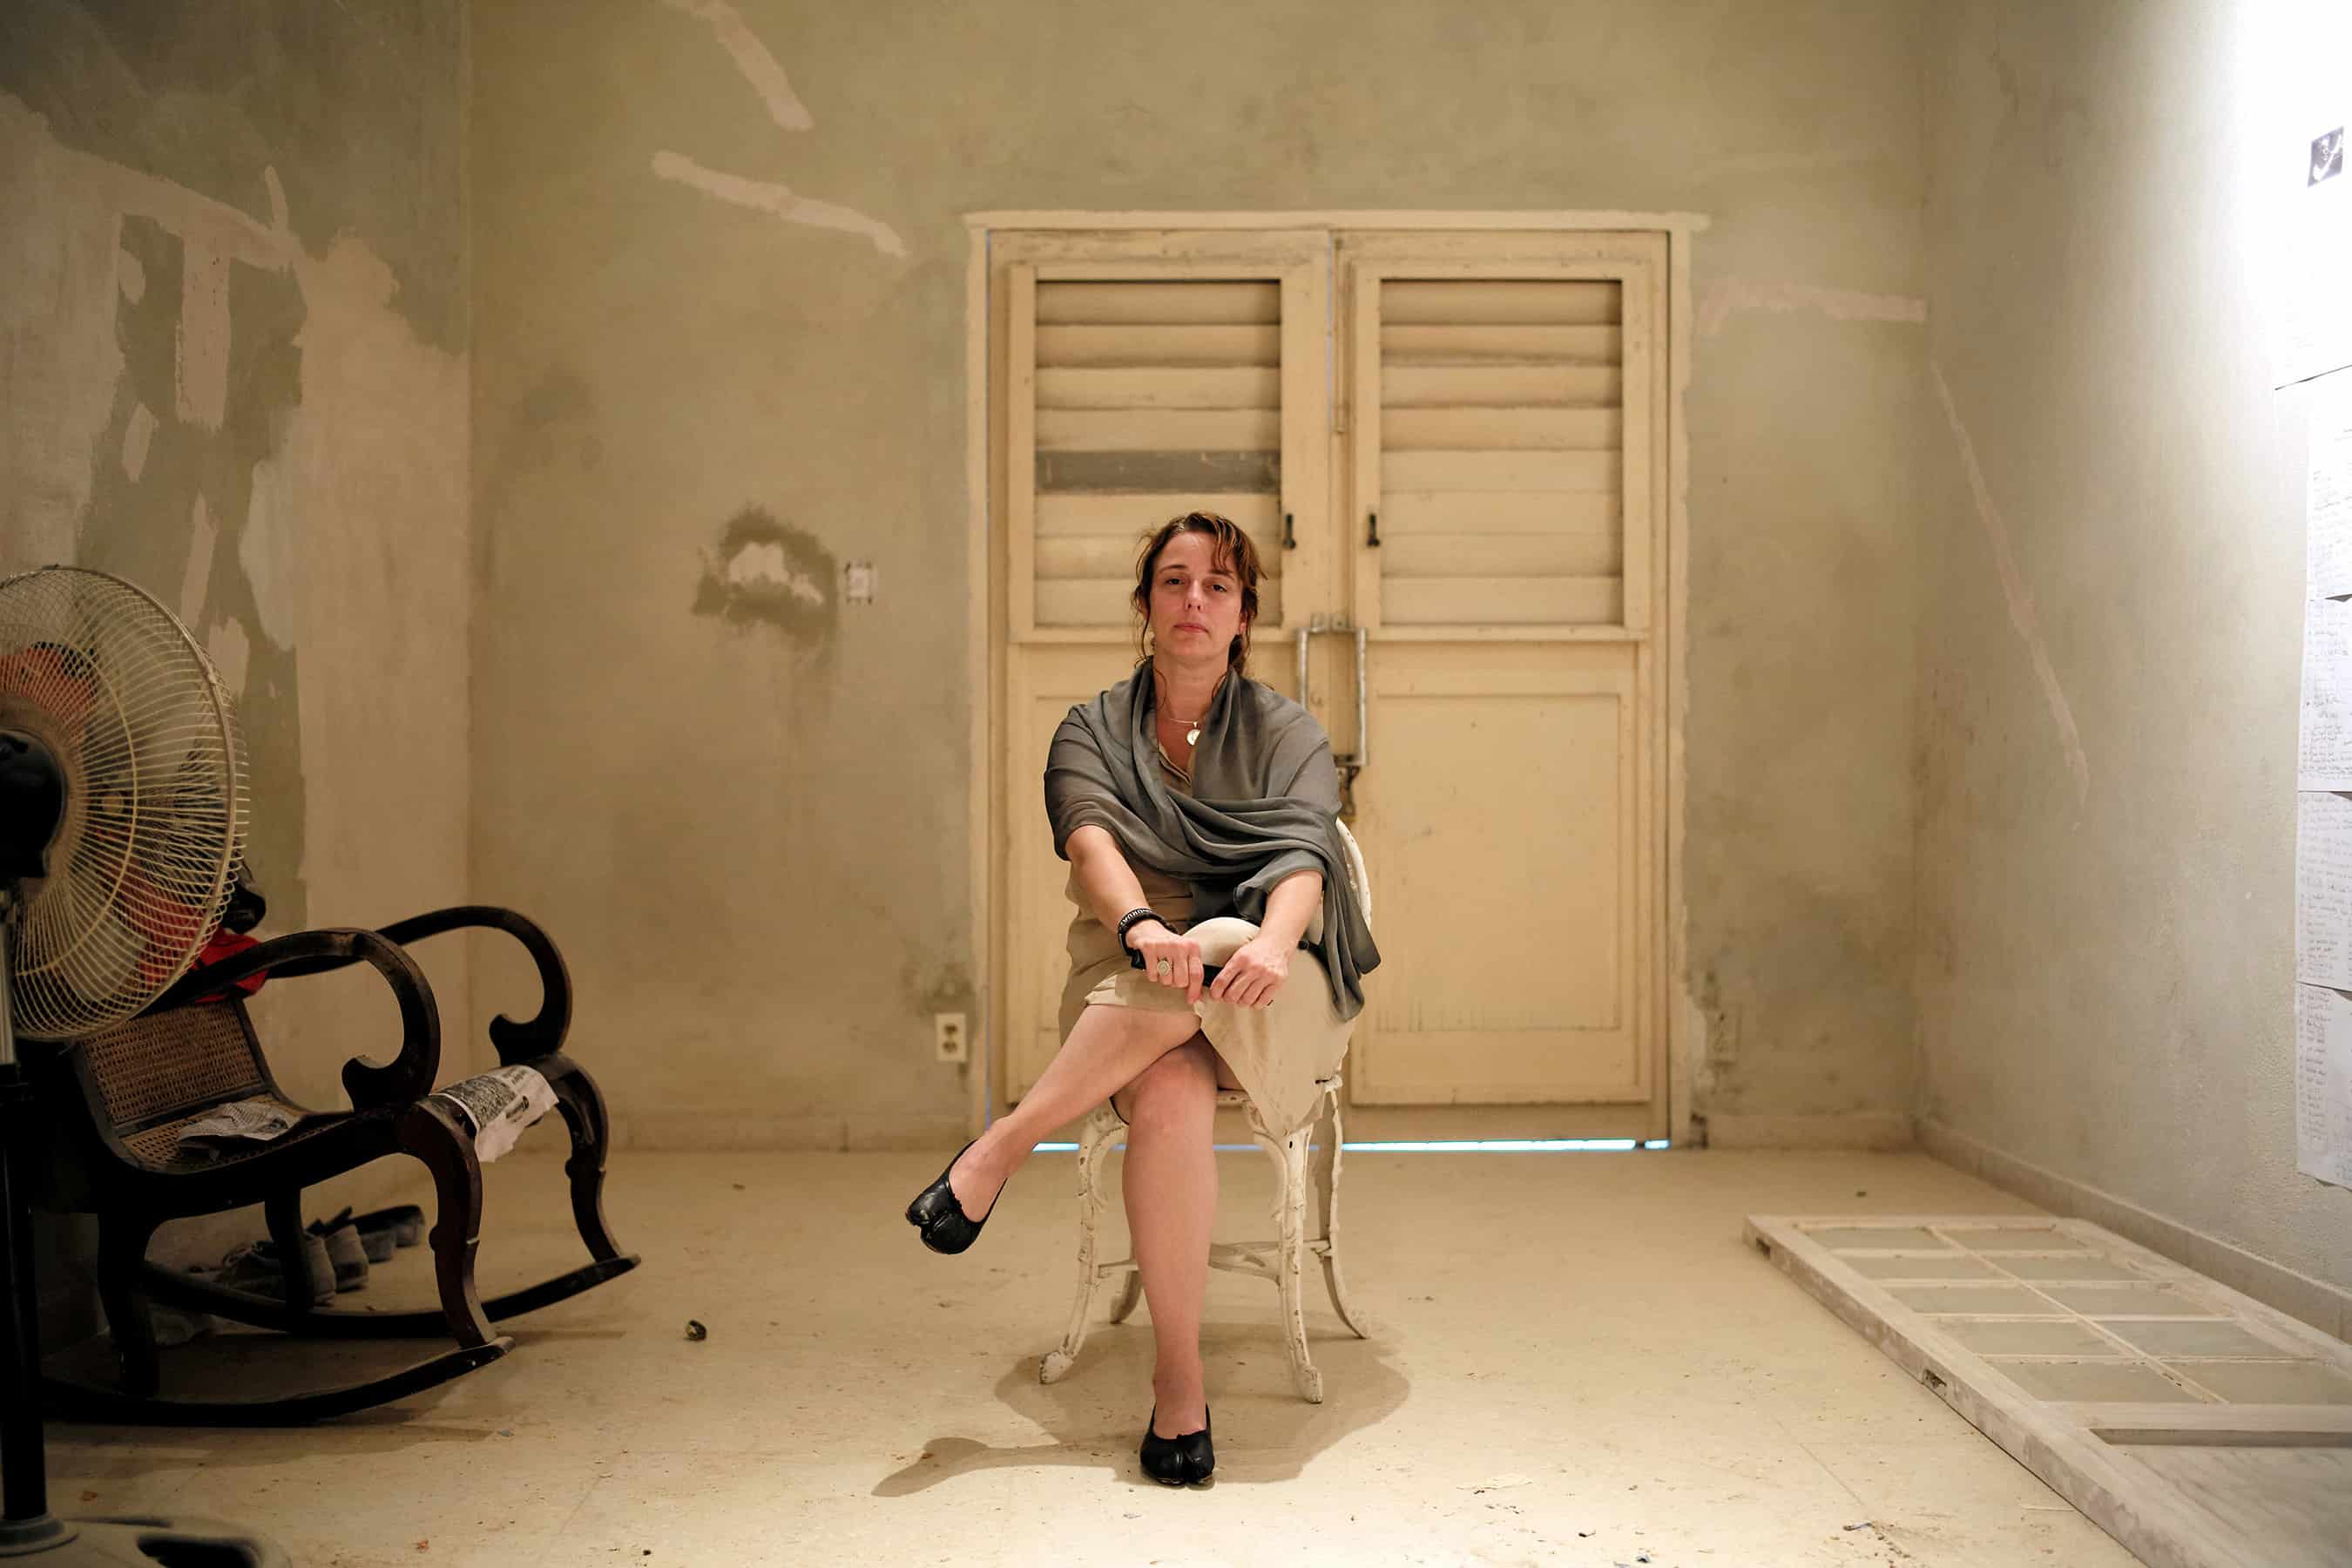 Tania Bruguera, a Cuban performance artist, poses in her home in Old Havana.